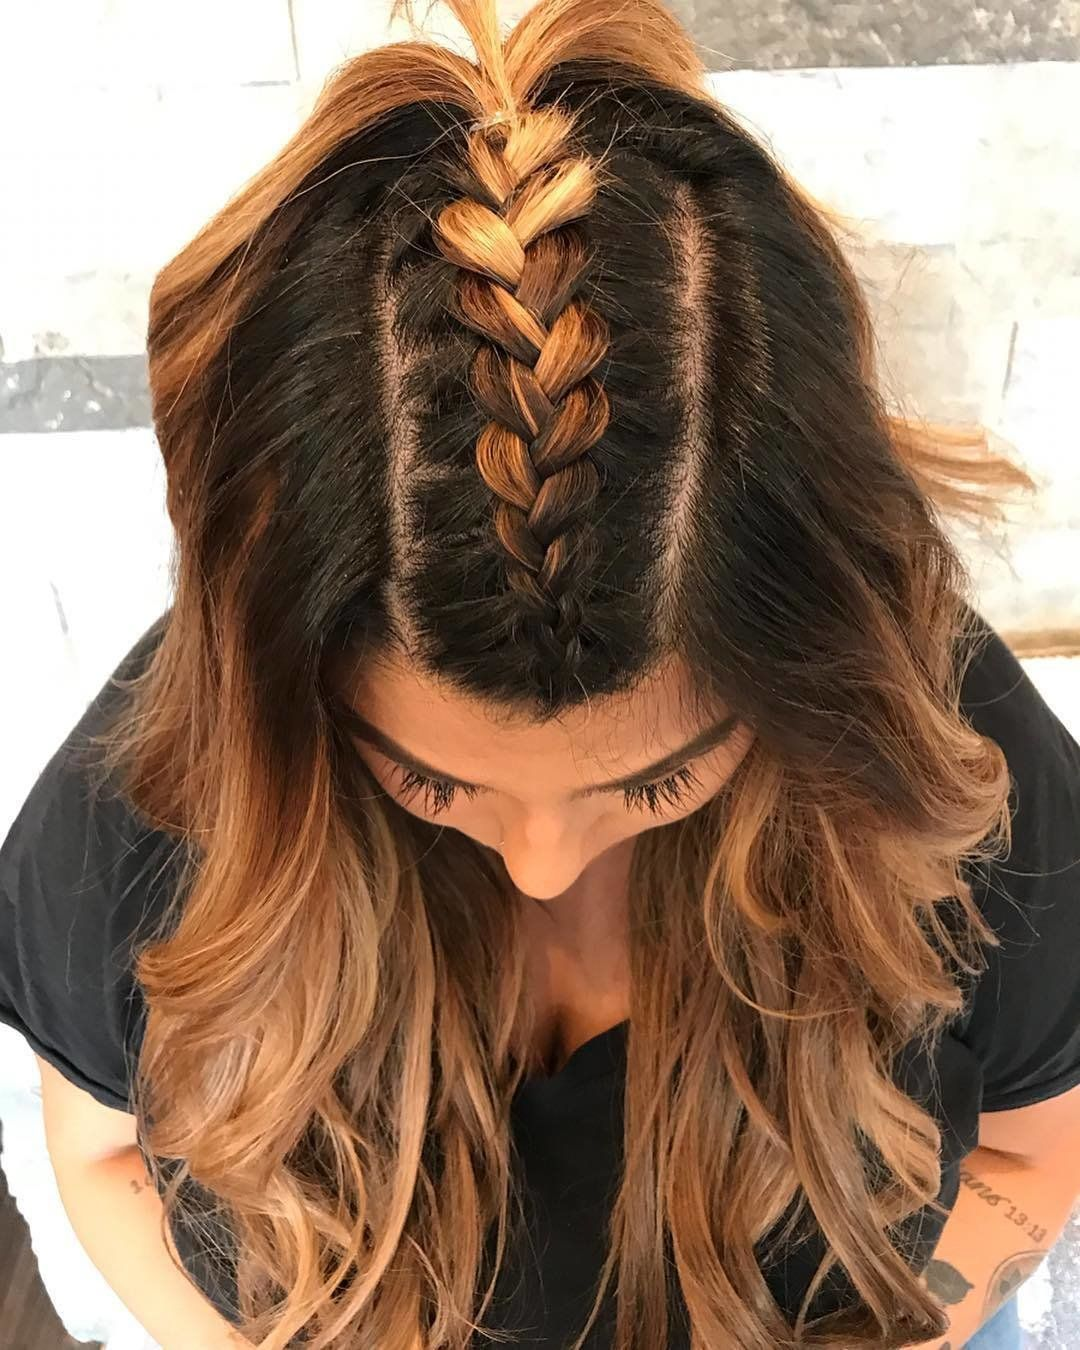 down-the-middle french braid | a simple french braid down